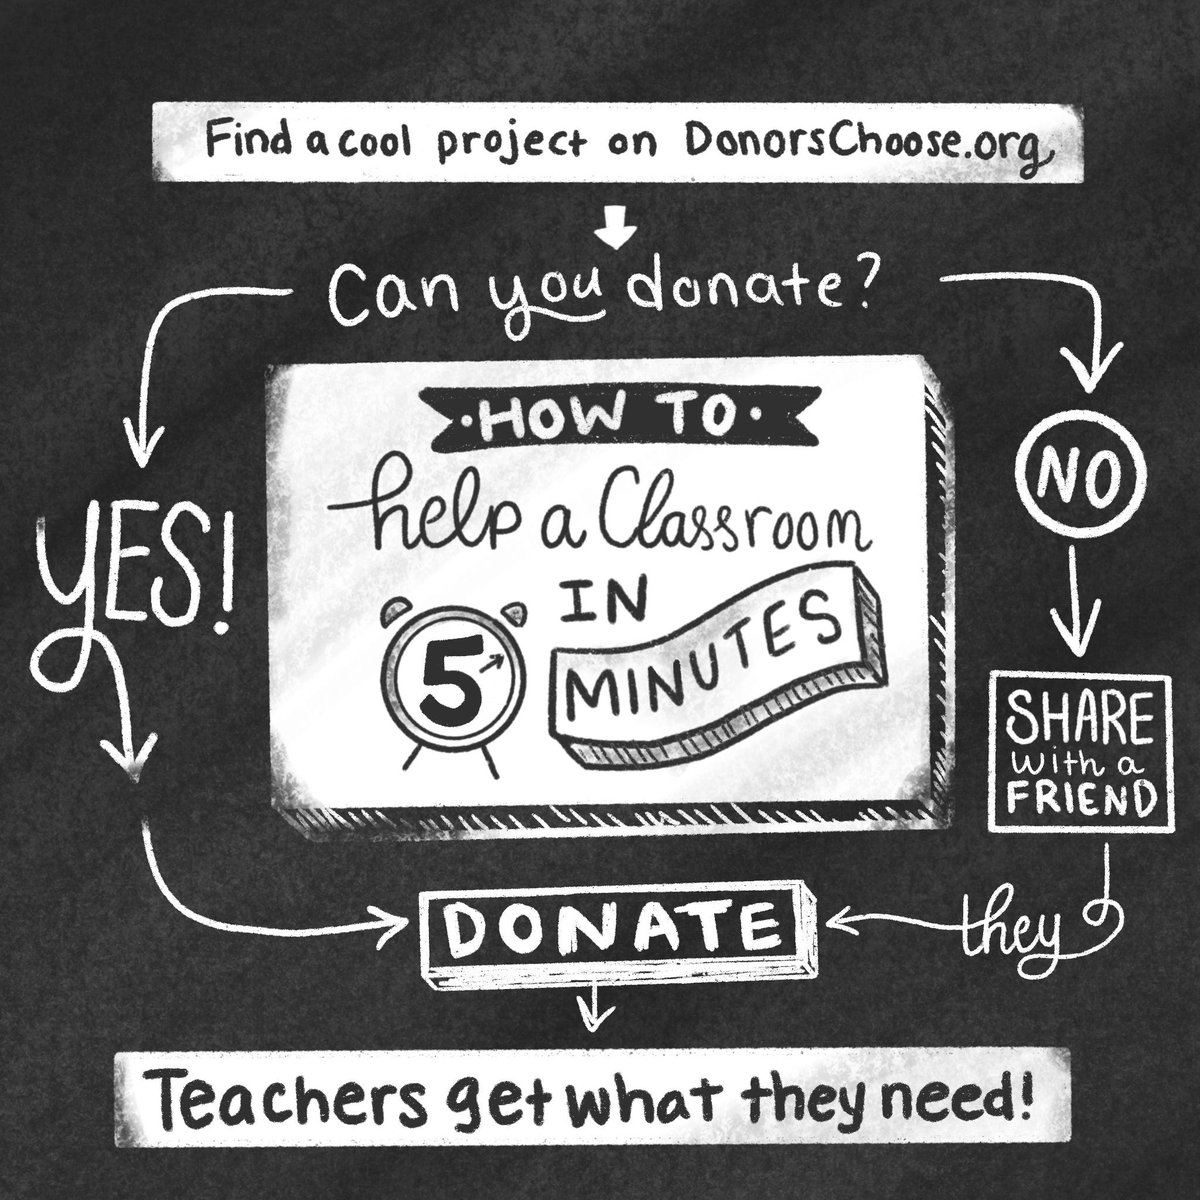 Do you have 5 minutes to spare today to support a teacher? bit.ly/3bzJIYL